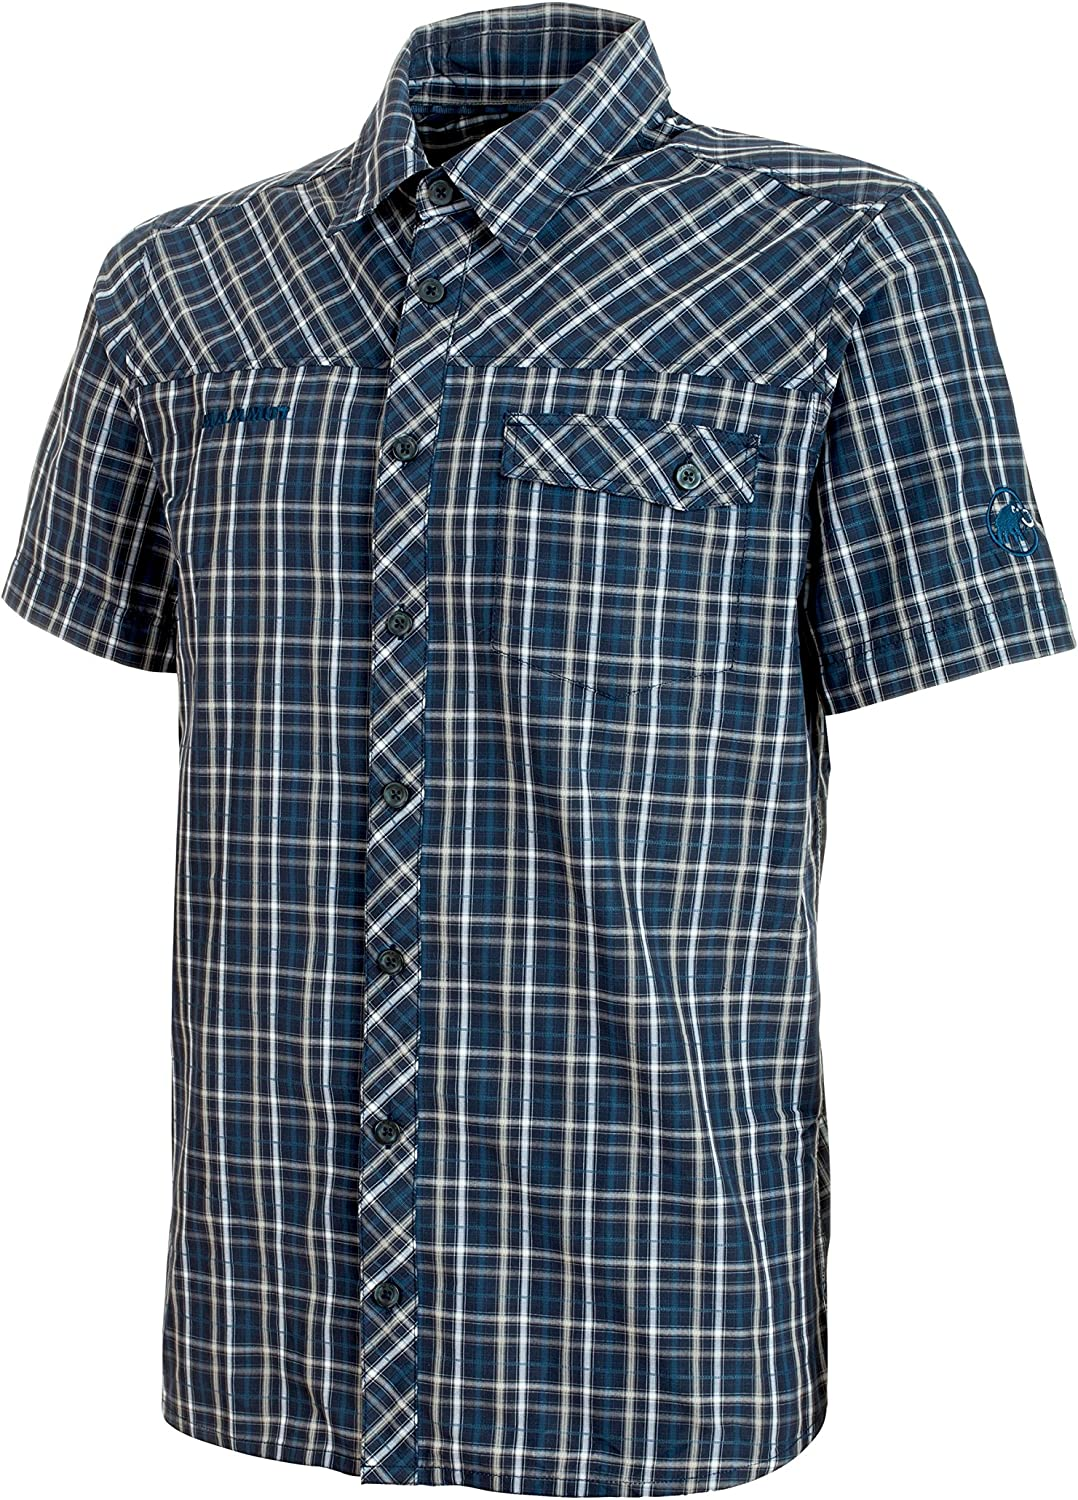 Mammut Asko Shirt  Men's